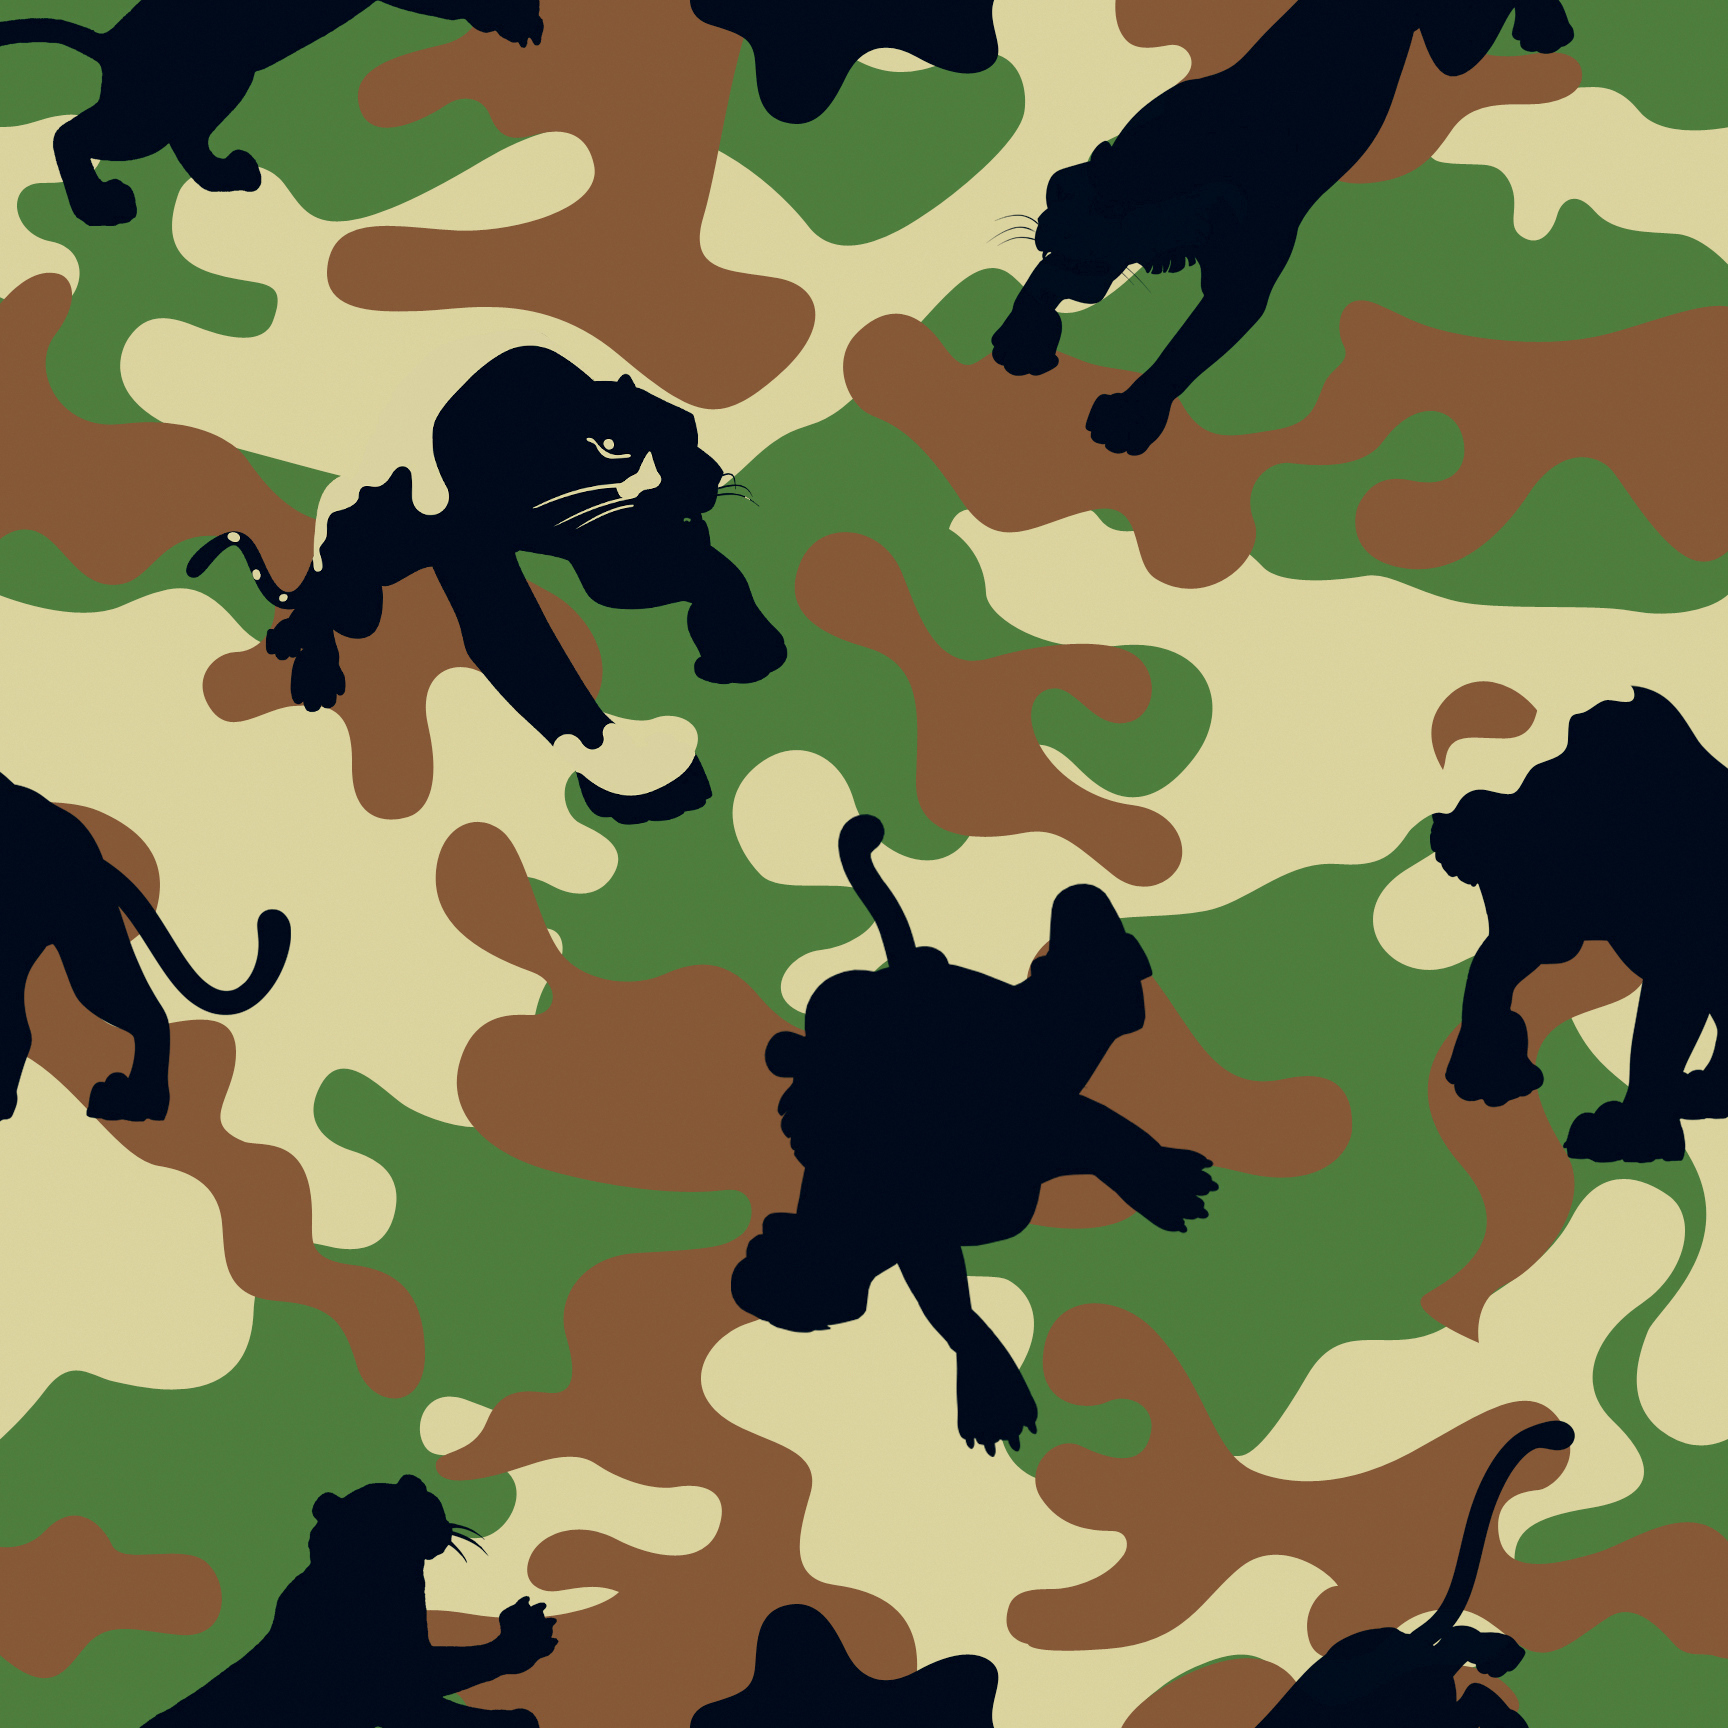 Jungle Book Animal Camo.11.28.18,jpg.jpg